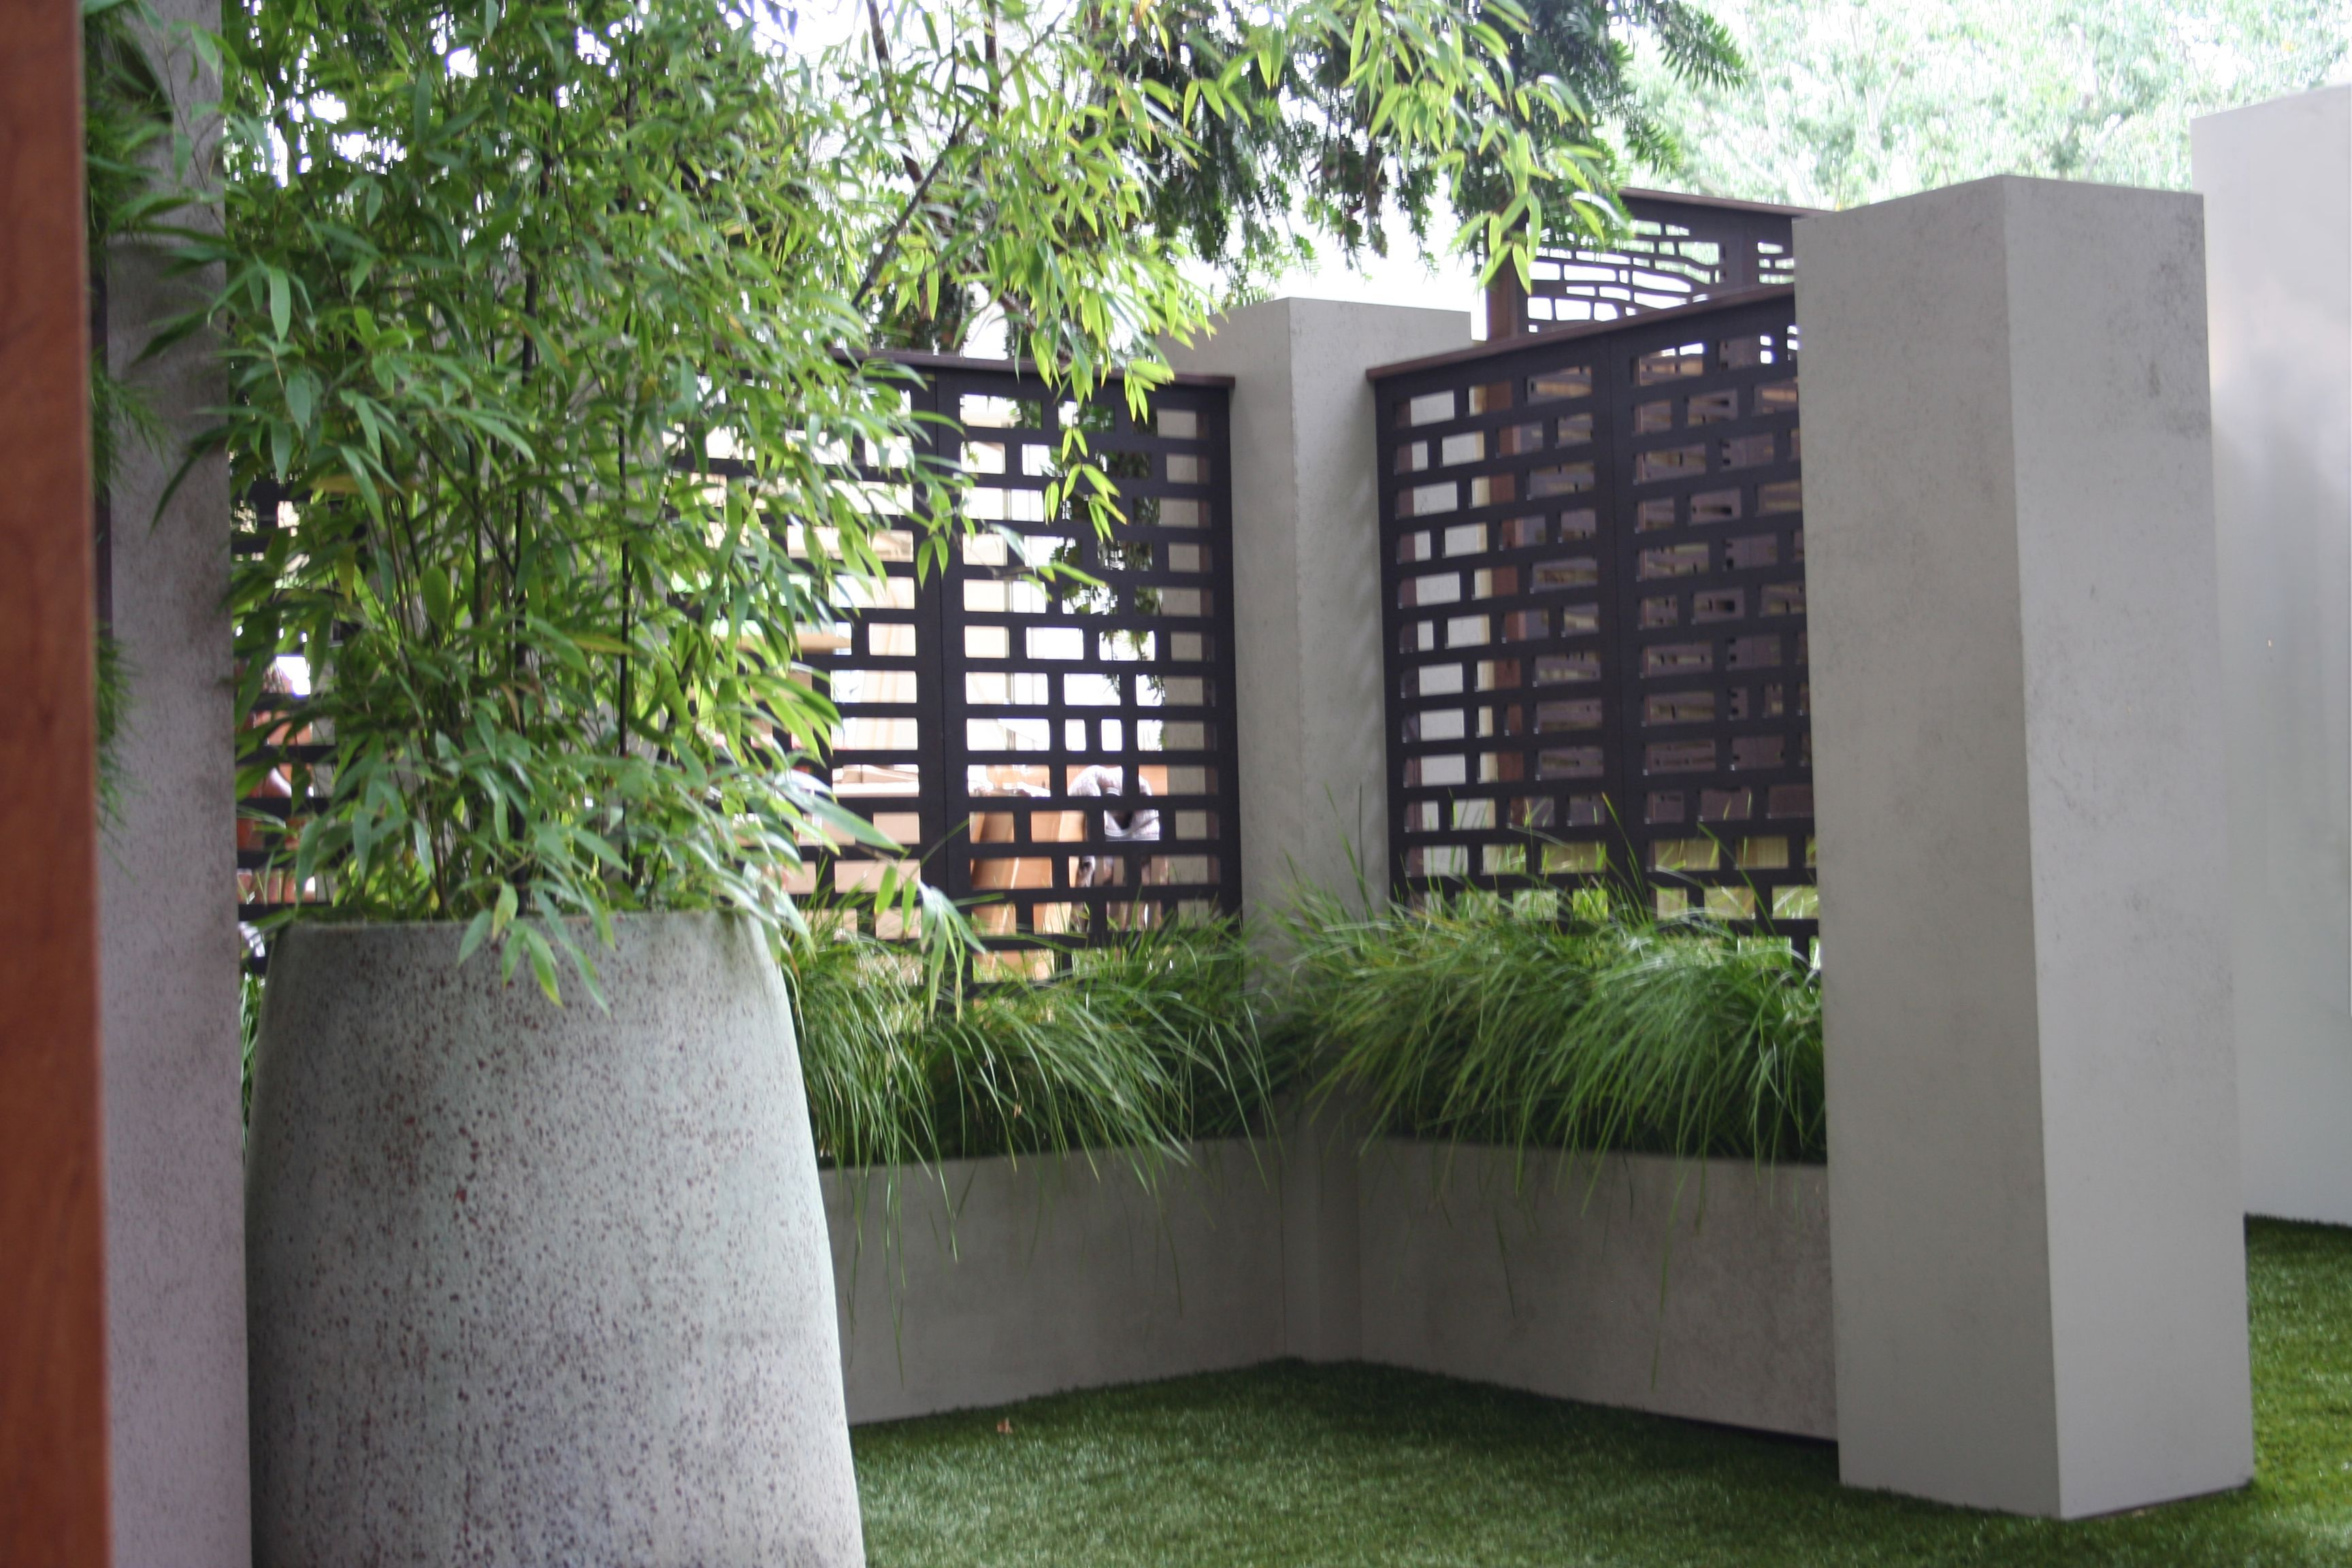 Privacy Yard Screen Modern | OUTDECO Mahjong Fence, Garden Screen  #PinMyDreamBackyard